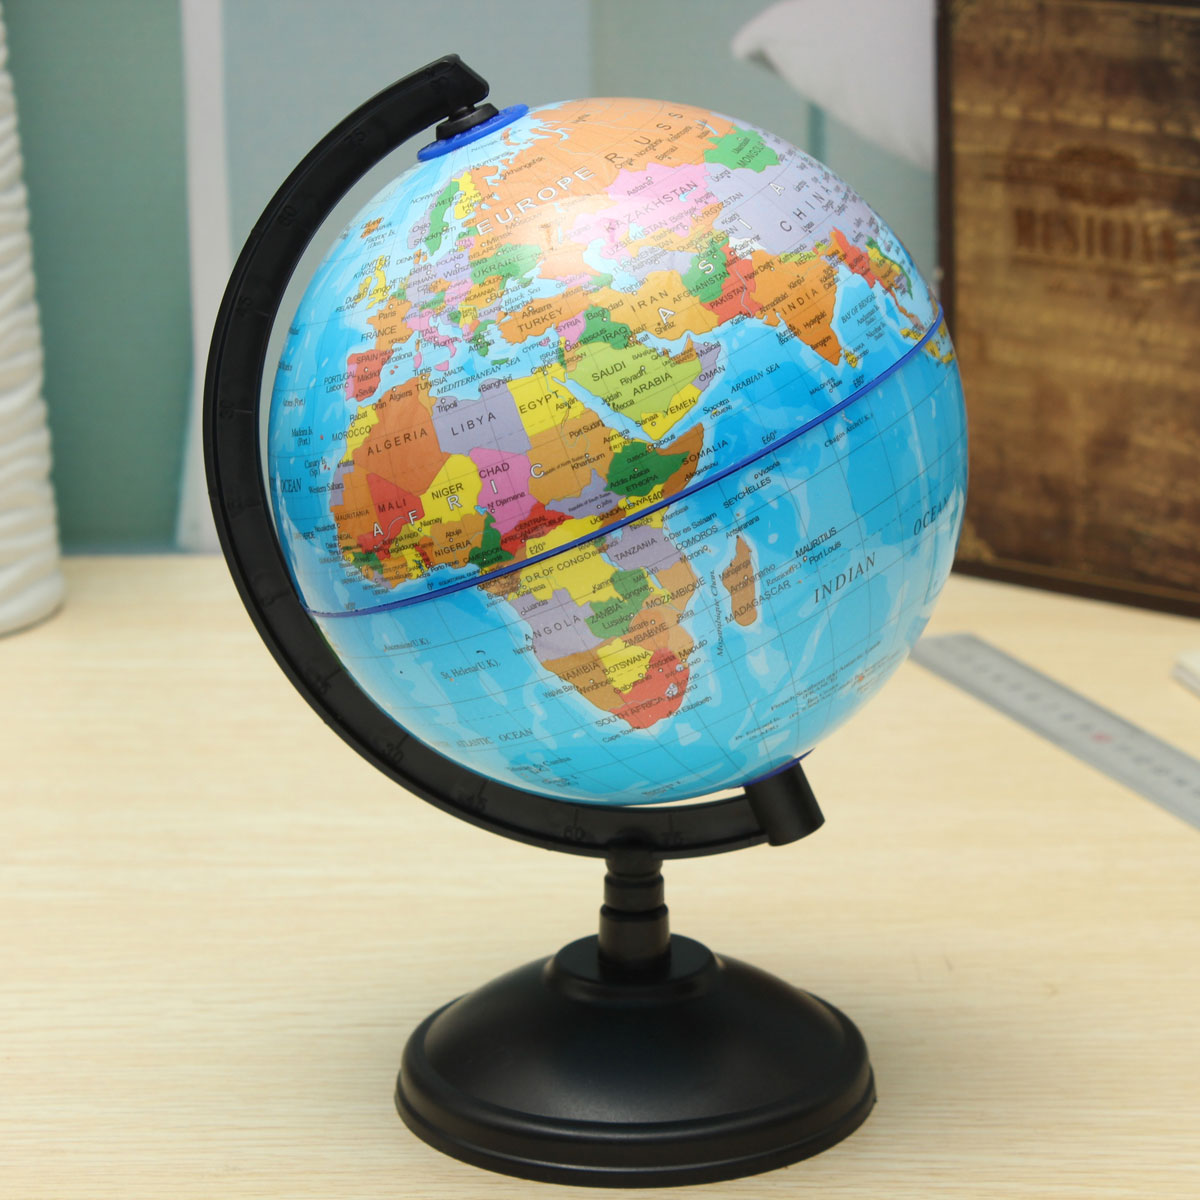 14cm world globe country region district map w swivel stand geography education intl lazada ph. Black Bedroom Furniture Sets. Home Design Ideas